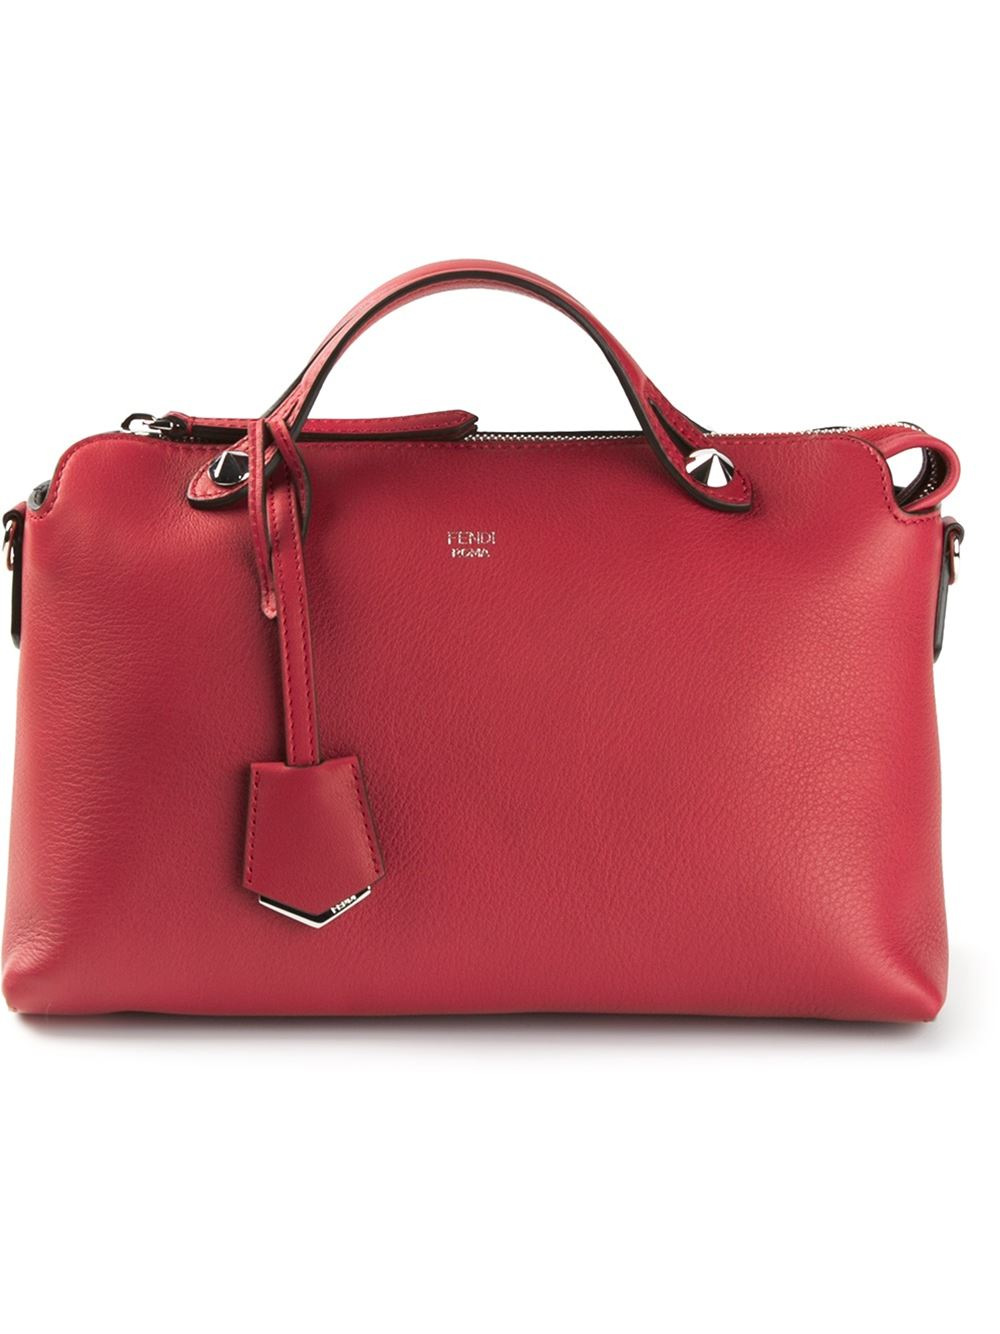 ... wholesale lyst fendi by the way leather shoulder bag in red d1ee8 823e8 0a4db1e58beda